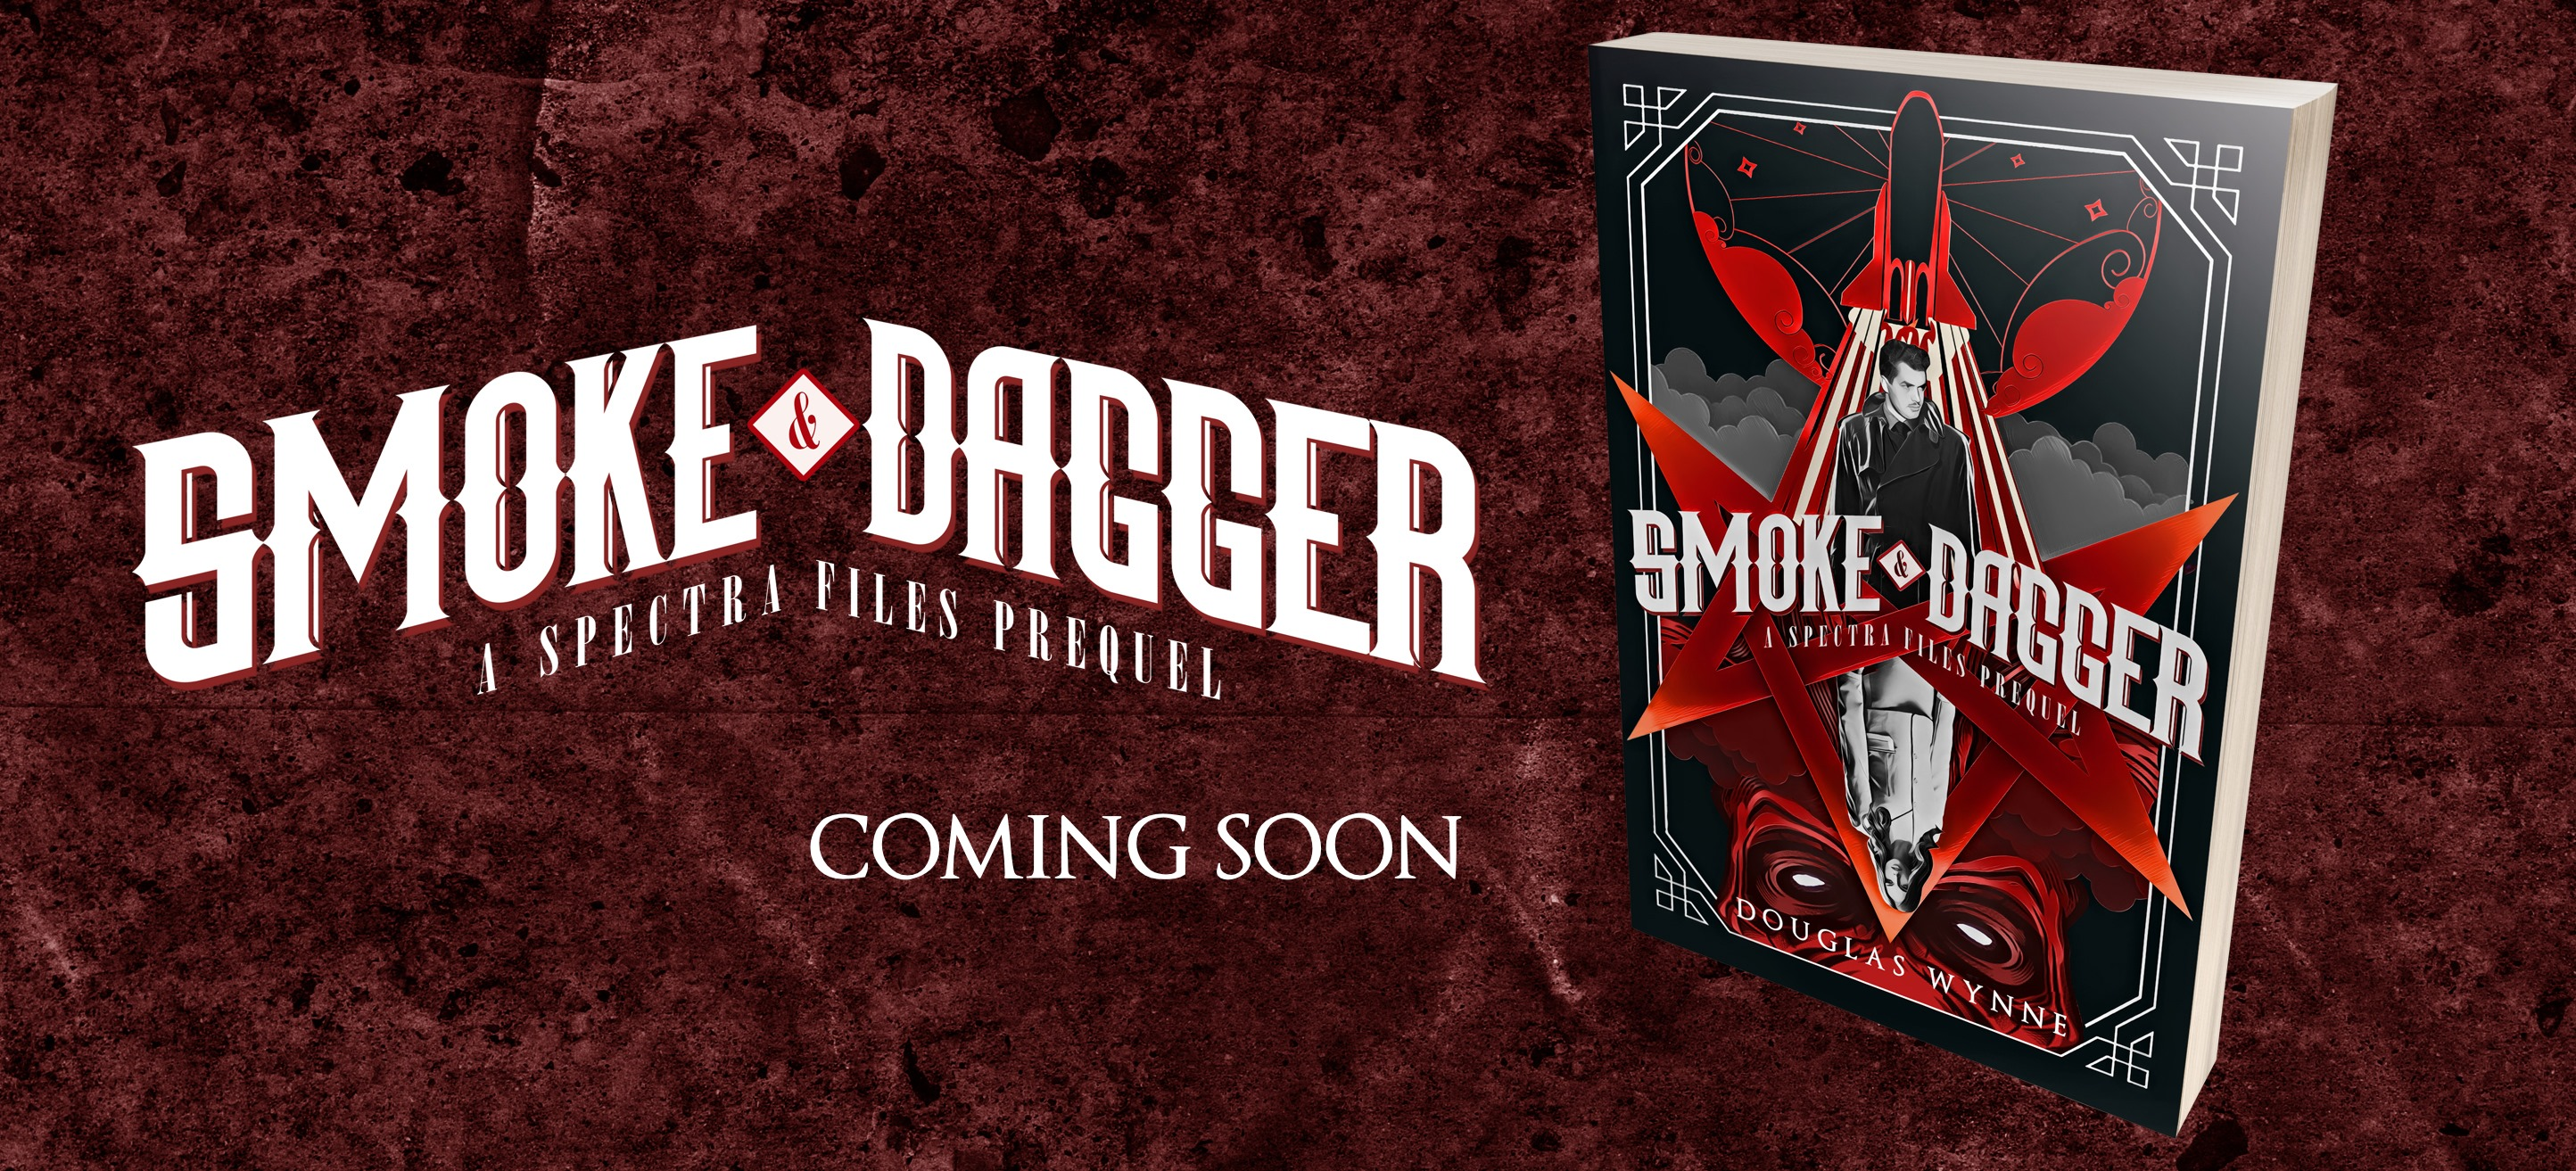 Review: 'Smoke & Dagger' by Douglas Wynne